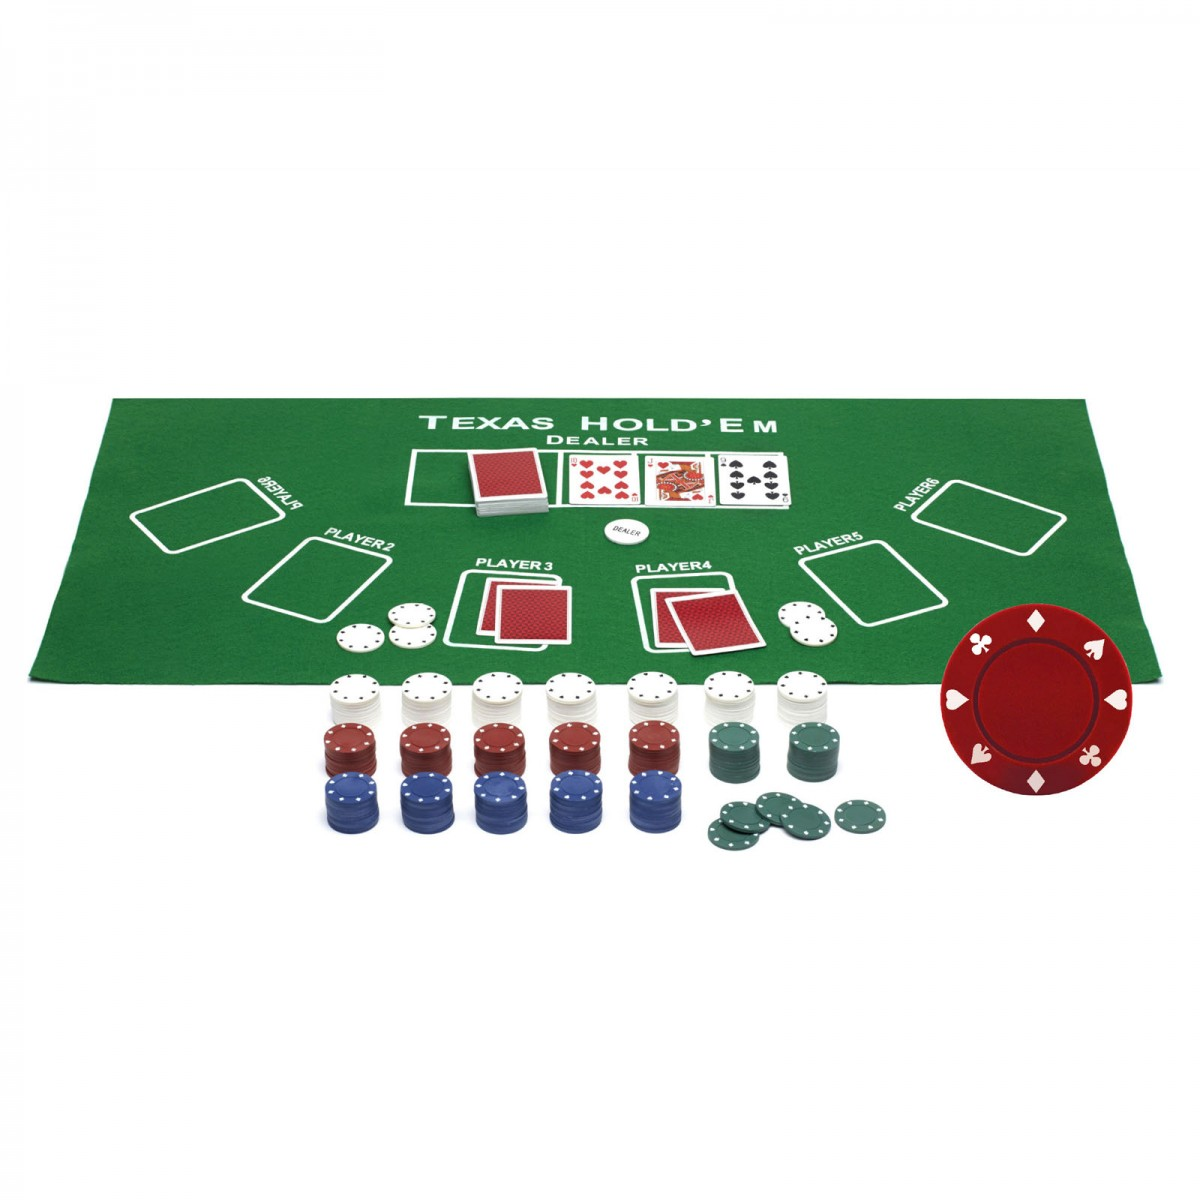 Rios cassino ancinho poker